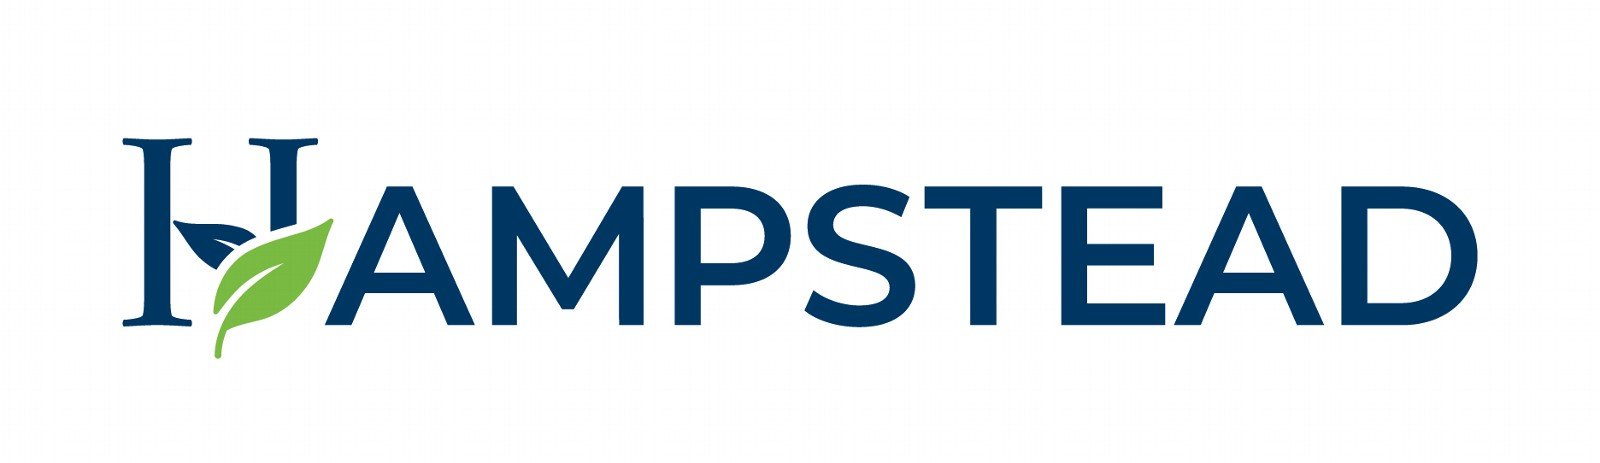 Hampstead Logo